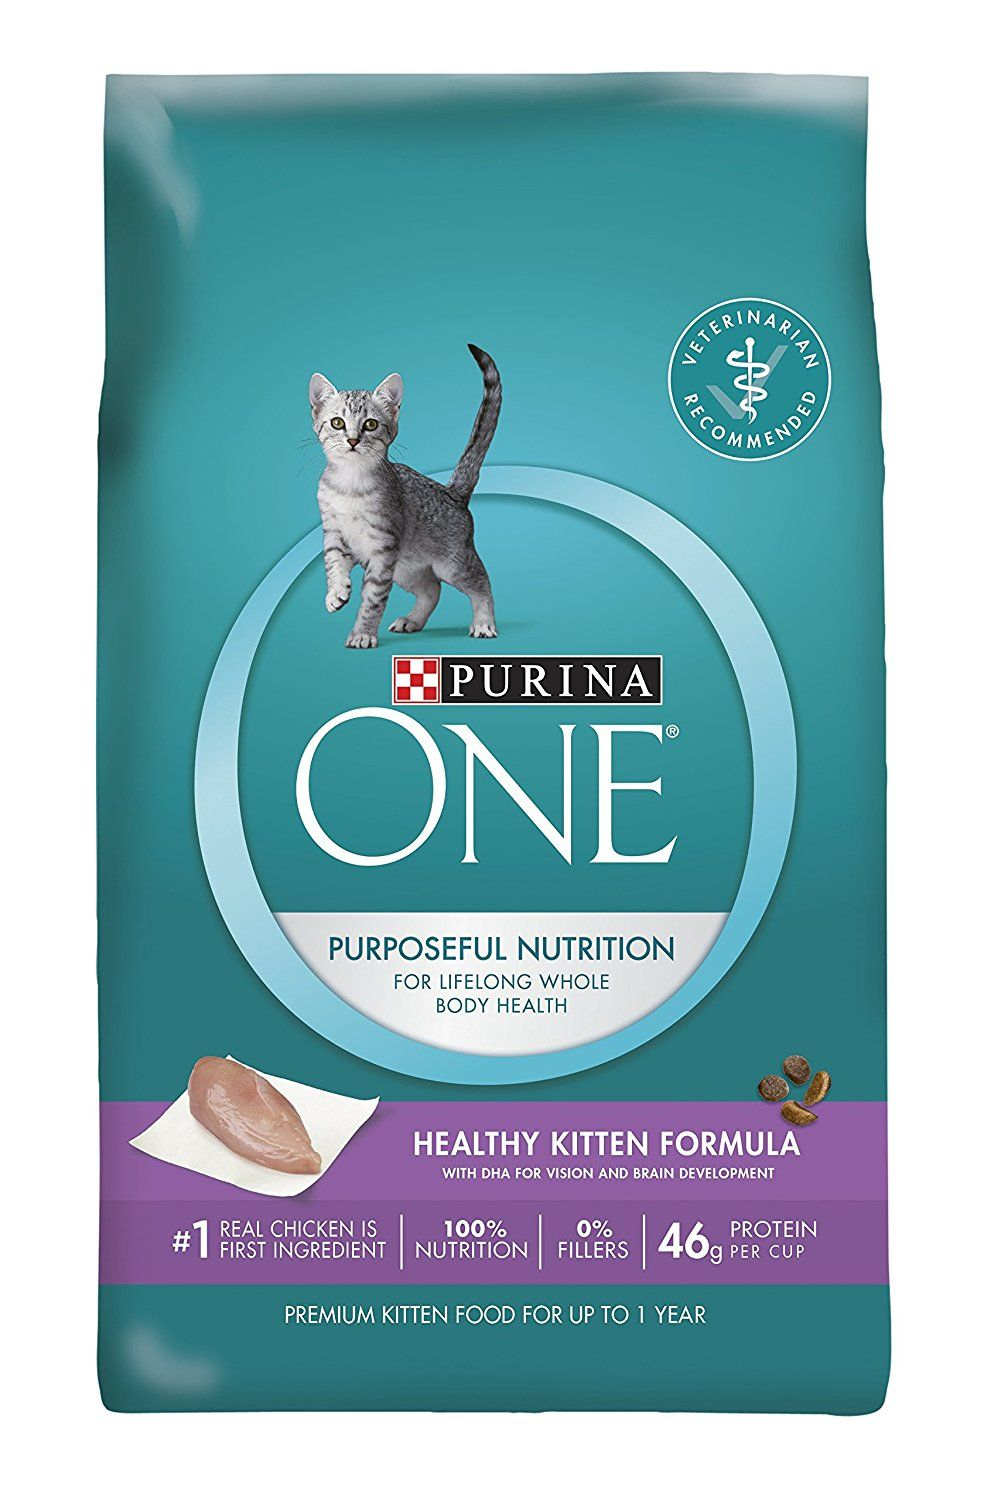 Purina One Healthy Kitten Formula Dry Cat Food Special Cat Product Just For You See It Now Cat Food Kitten Food Dry Cat Food Cat Food